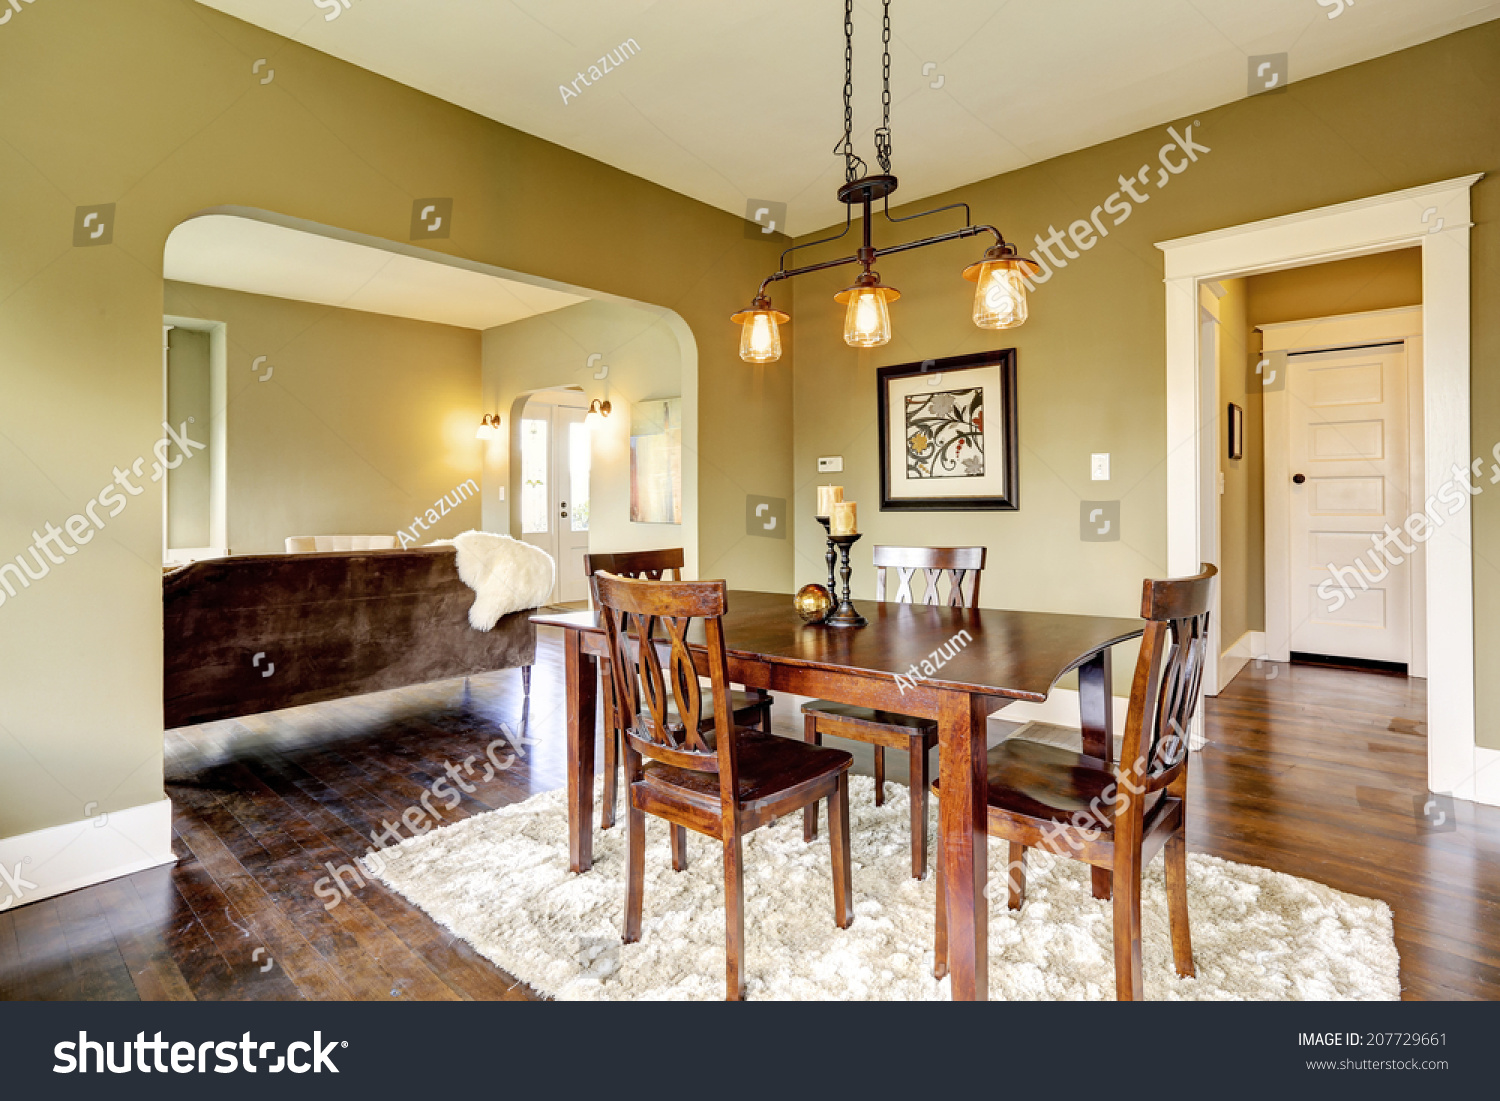 Open floor plan dining area dark stock photo 207729661 for Hardwood floor plans